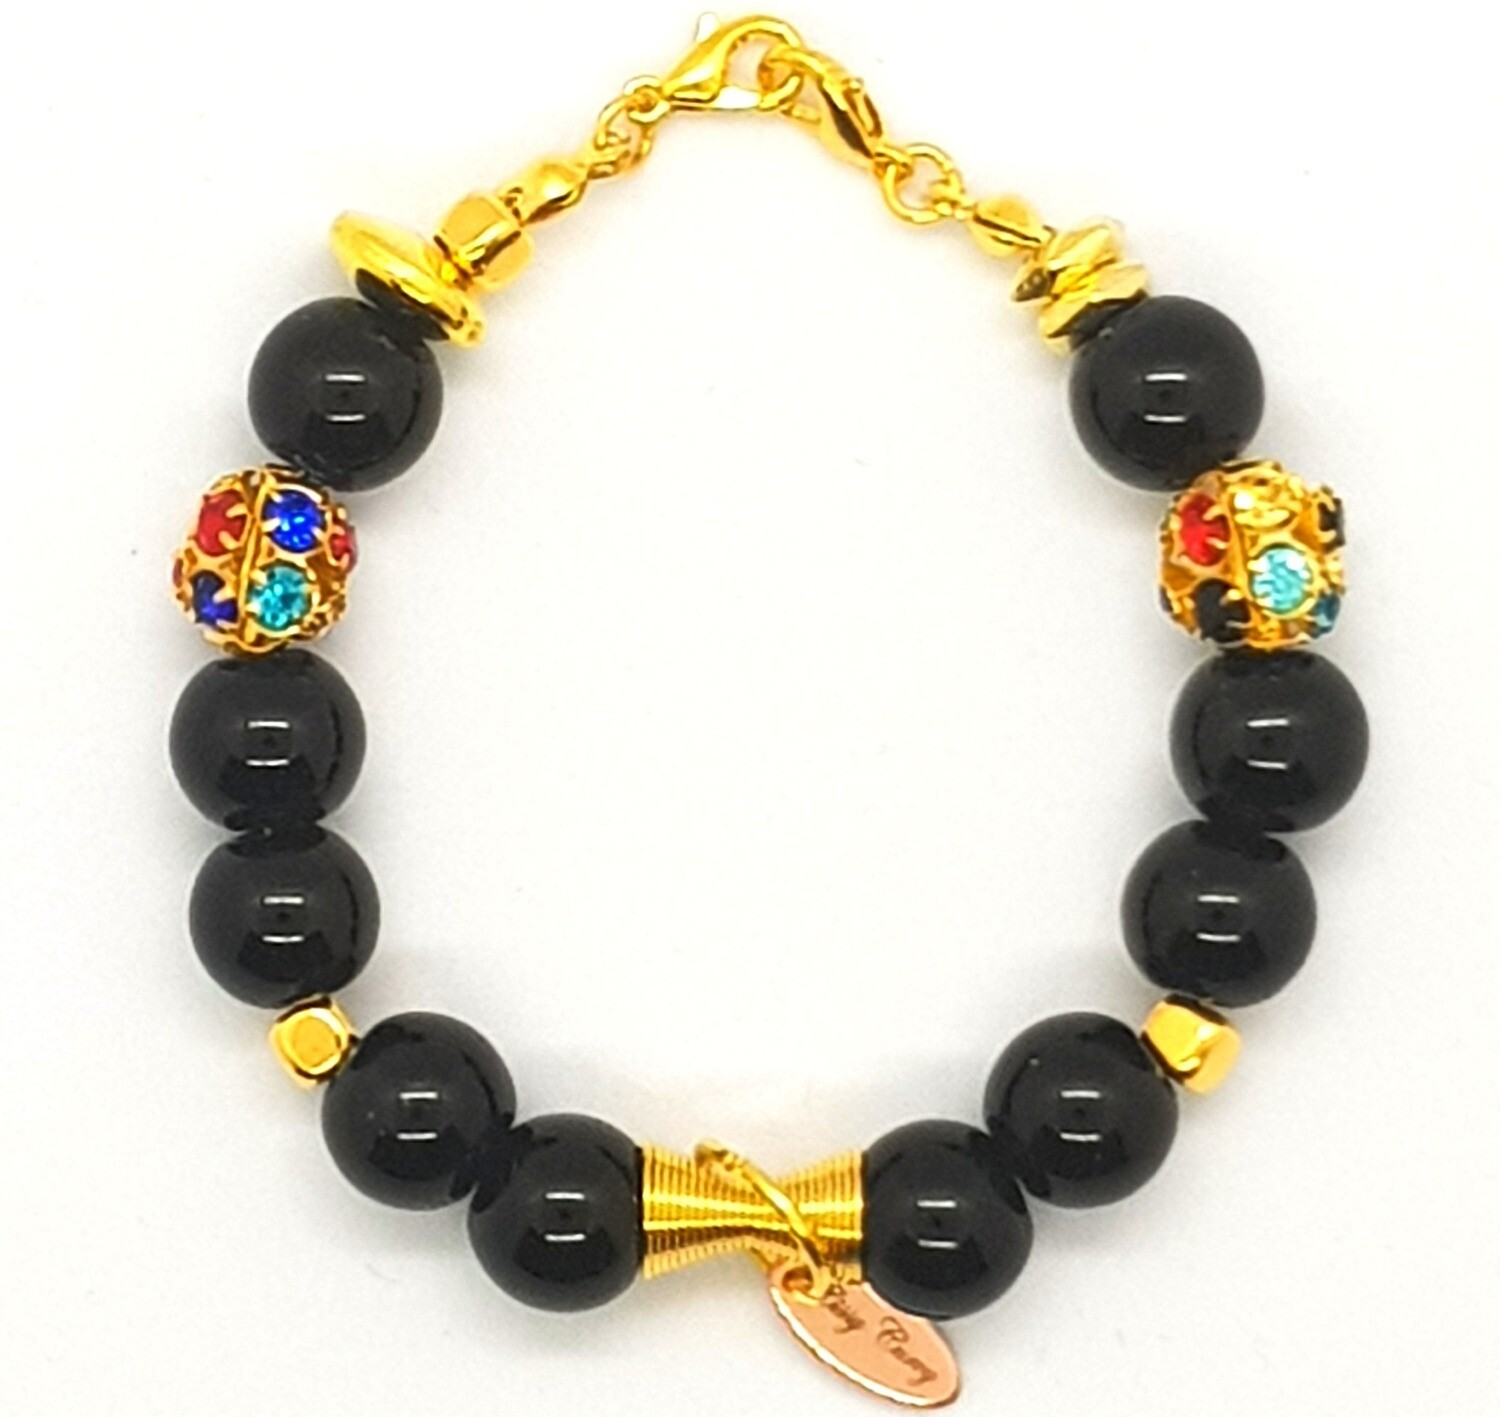 Bracelet & Face Mask Extender Dual Function (Katsumi - Black Pearl Beads, Gold Accessories & Durable Soft Wire String)